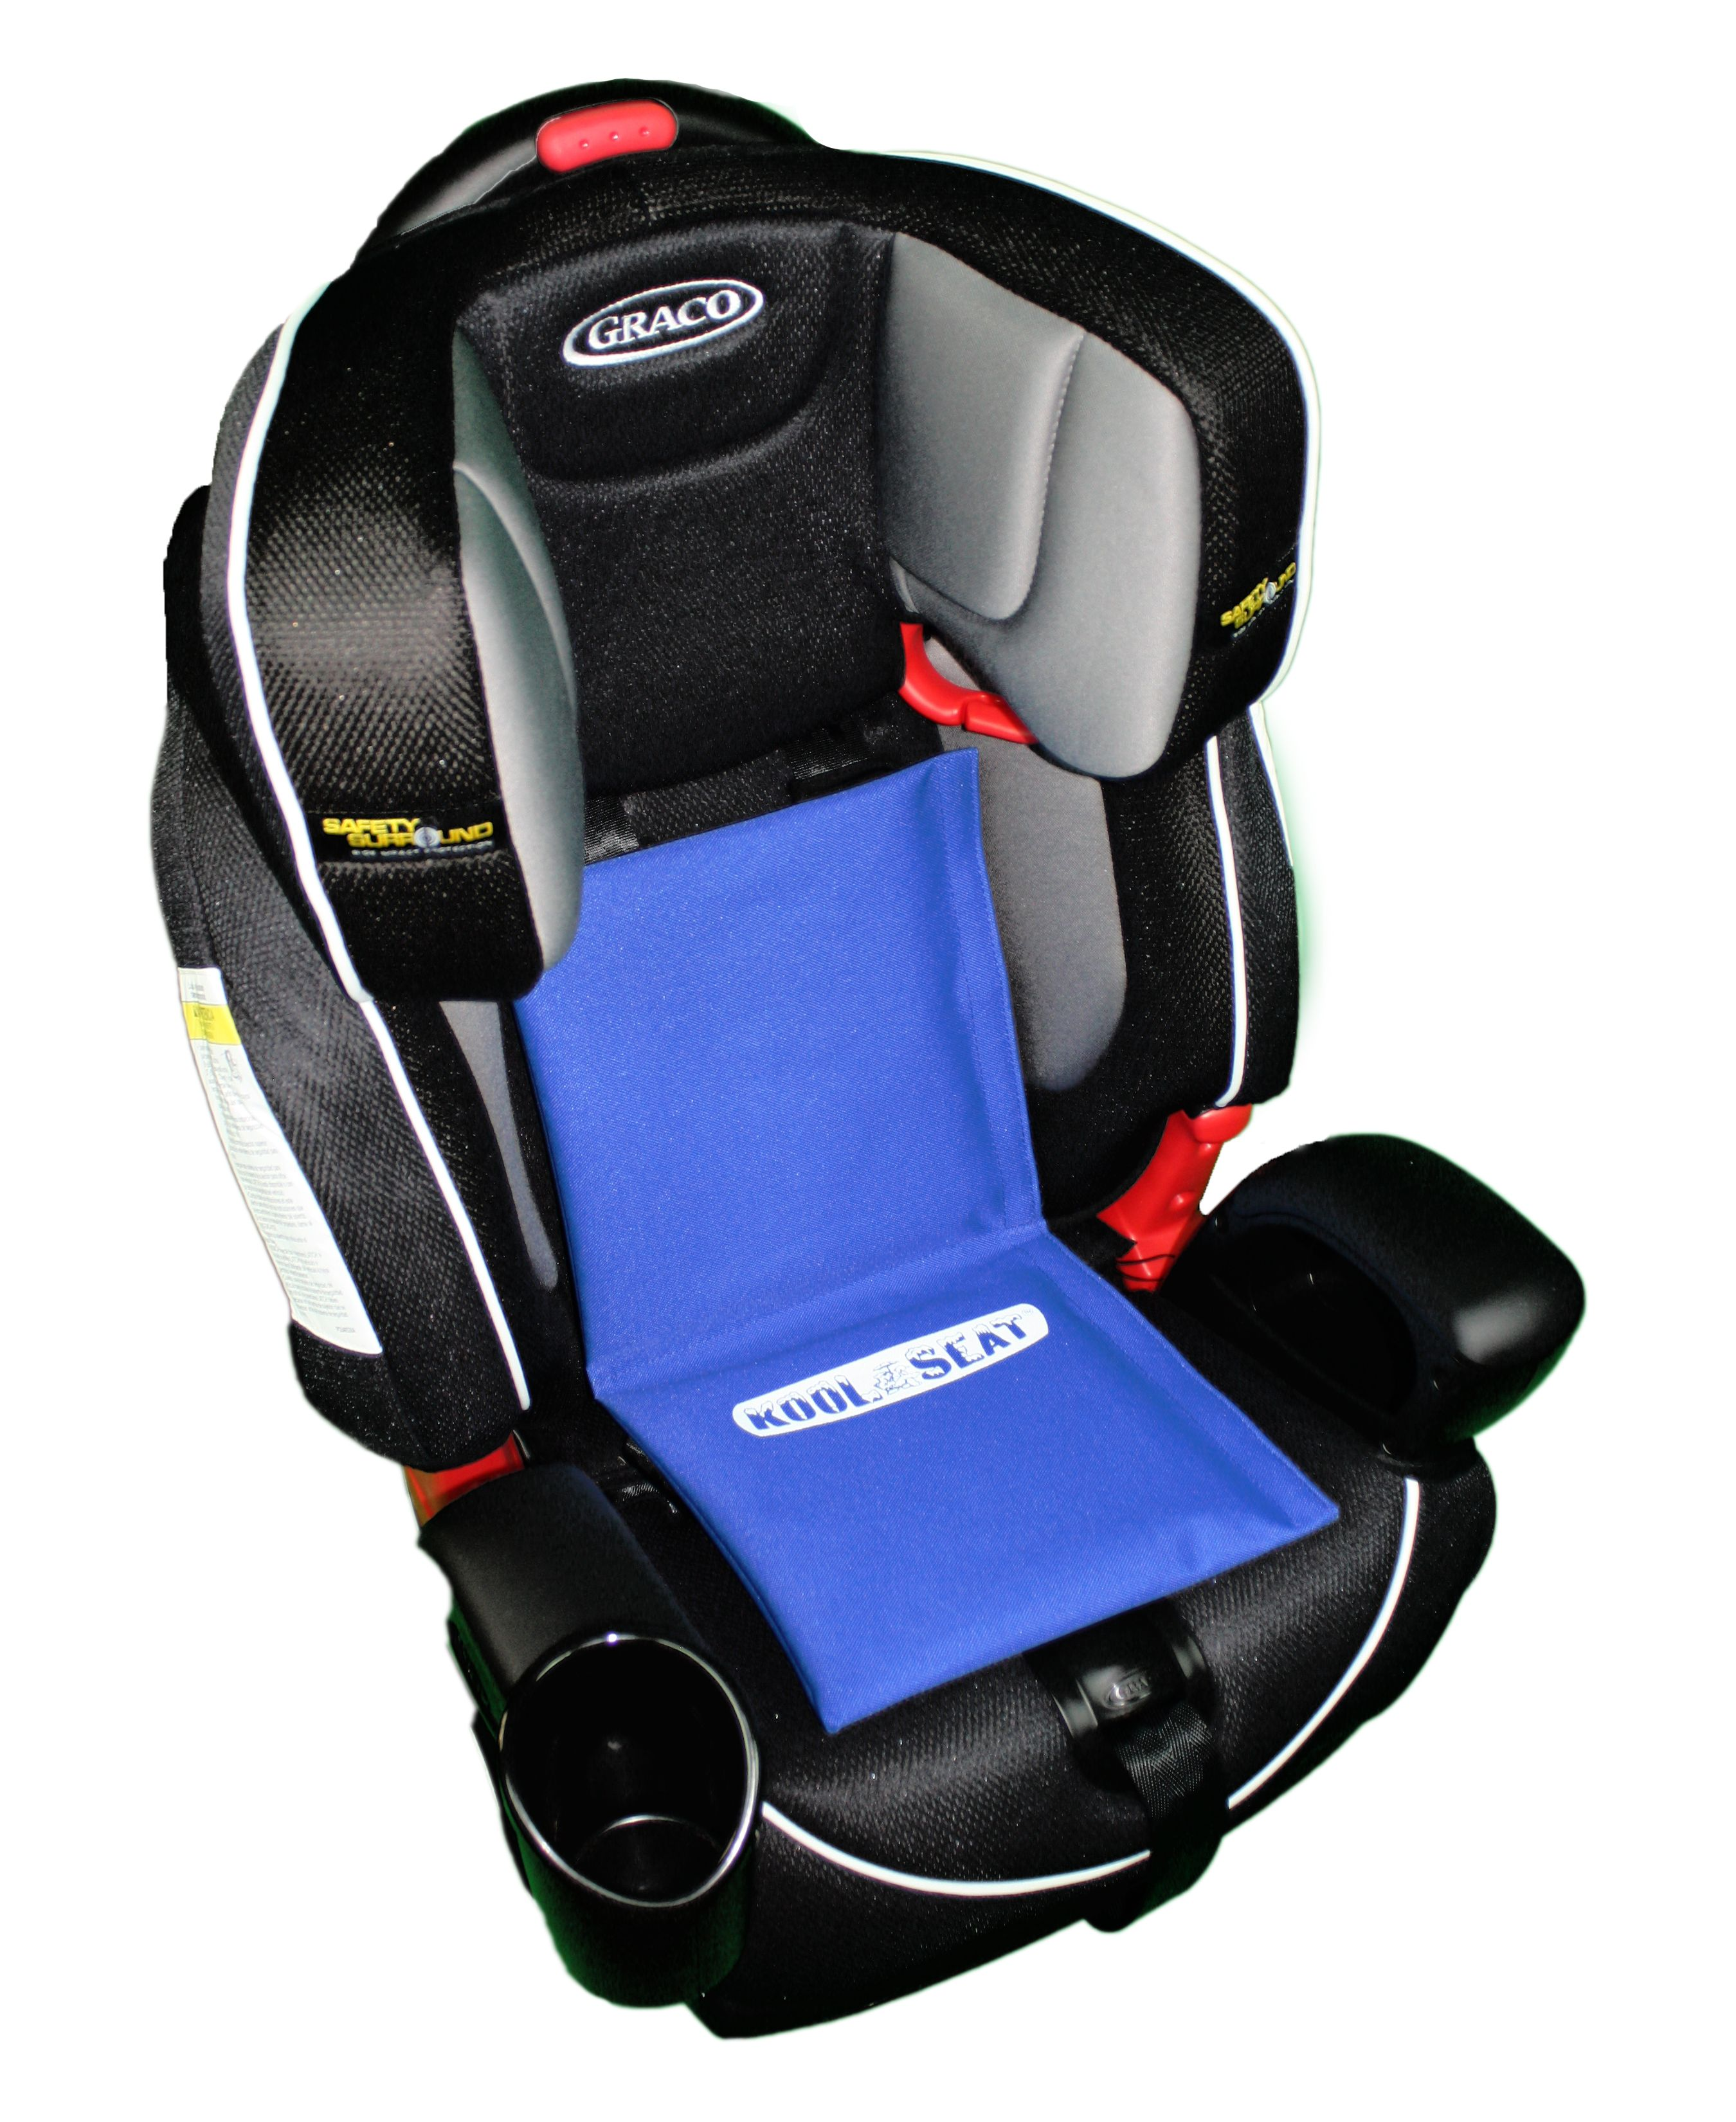 The Kool Seat Is A Car Seat Cooling Pad It Keeps Your Precious